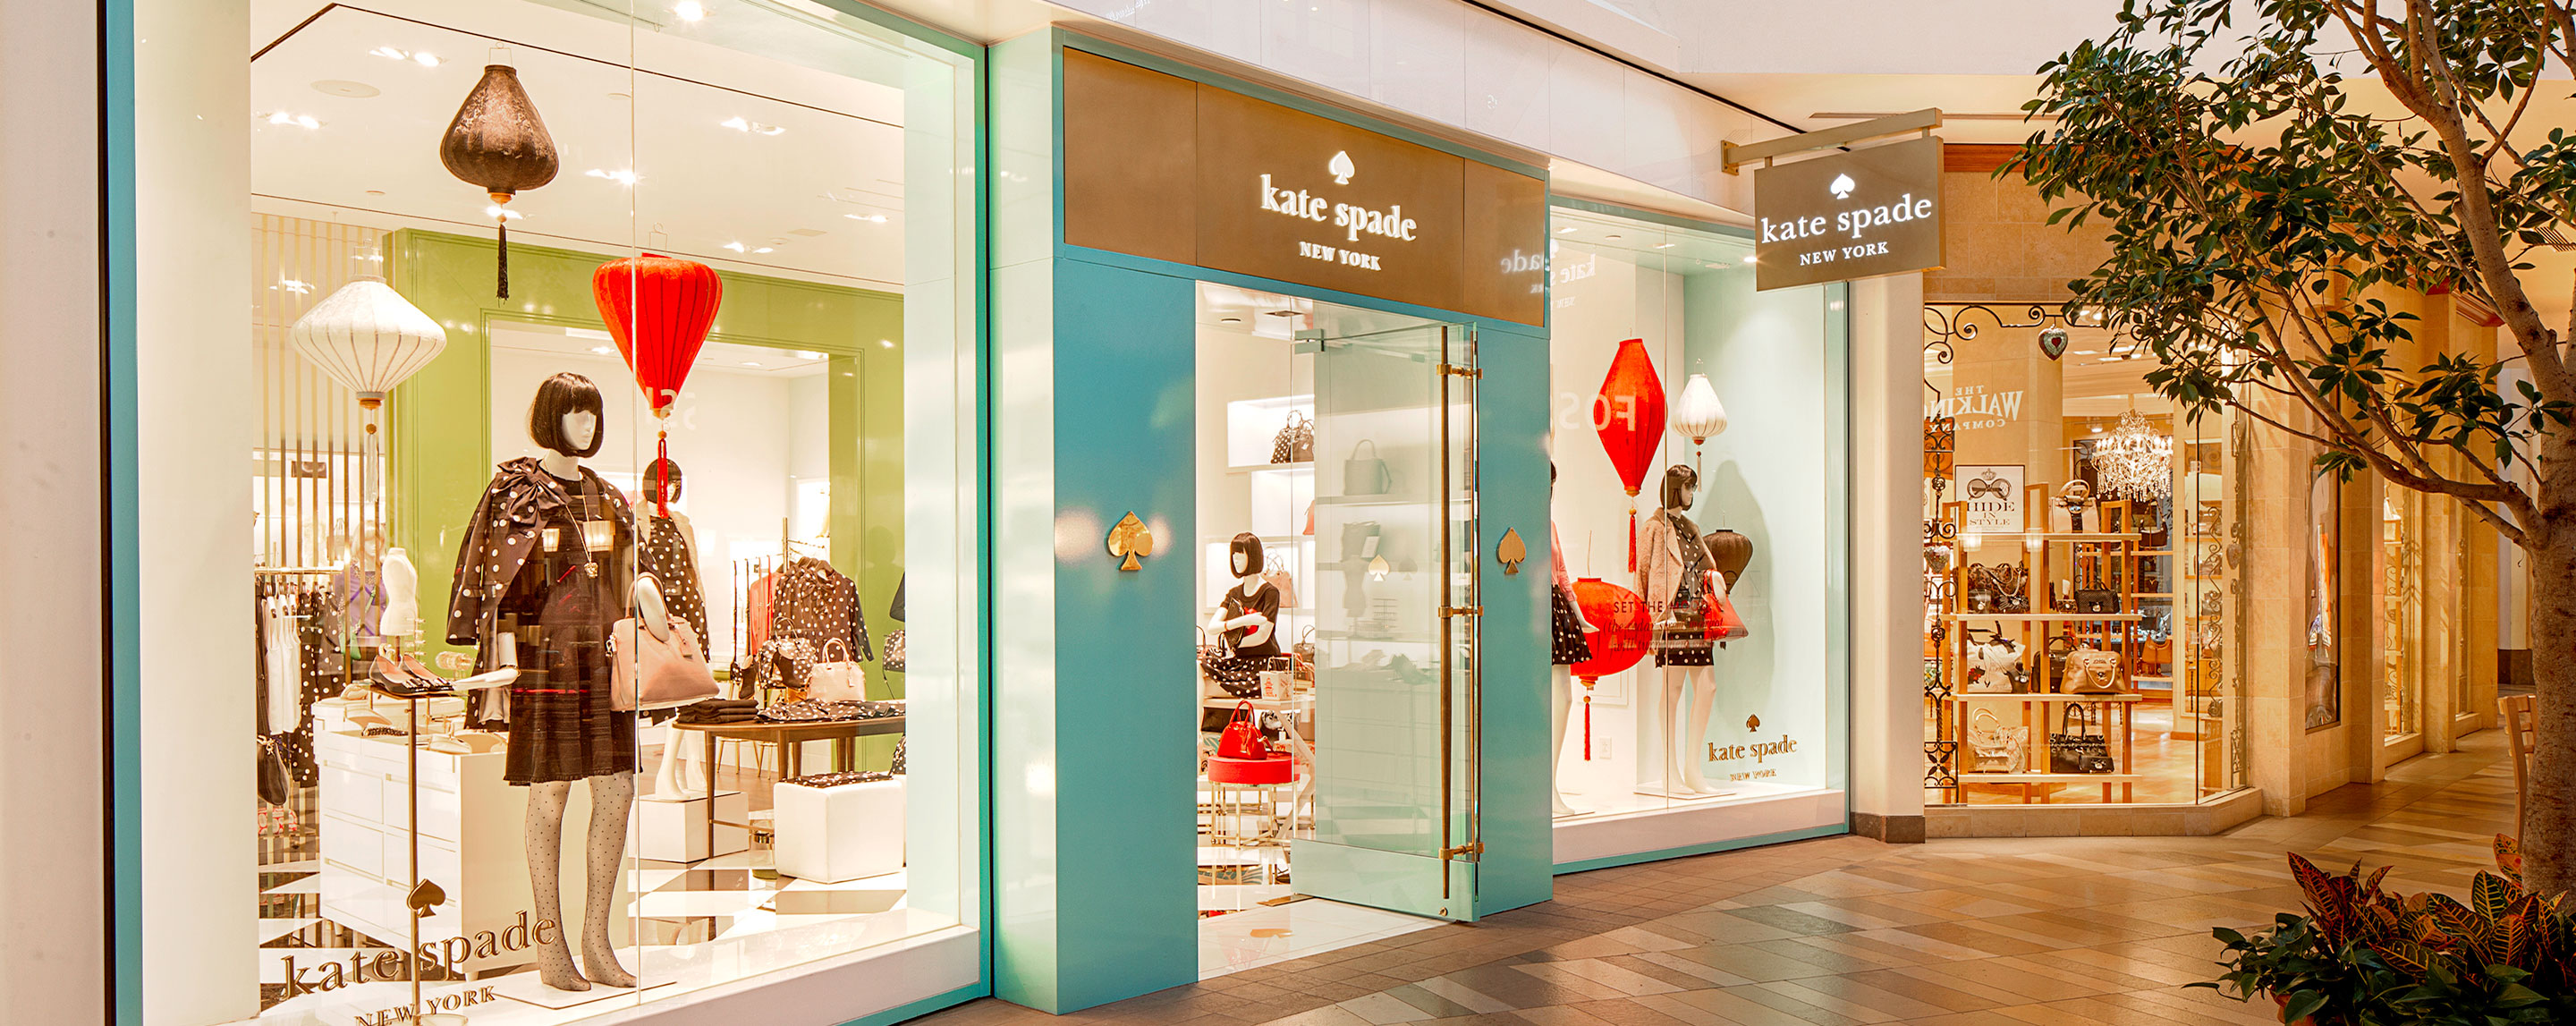 In a Beachwood Place interior walkway, storefronts including Kate Spade are lit up for shoppers.